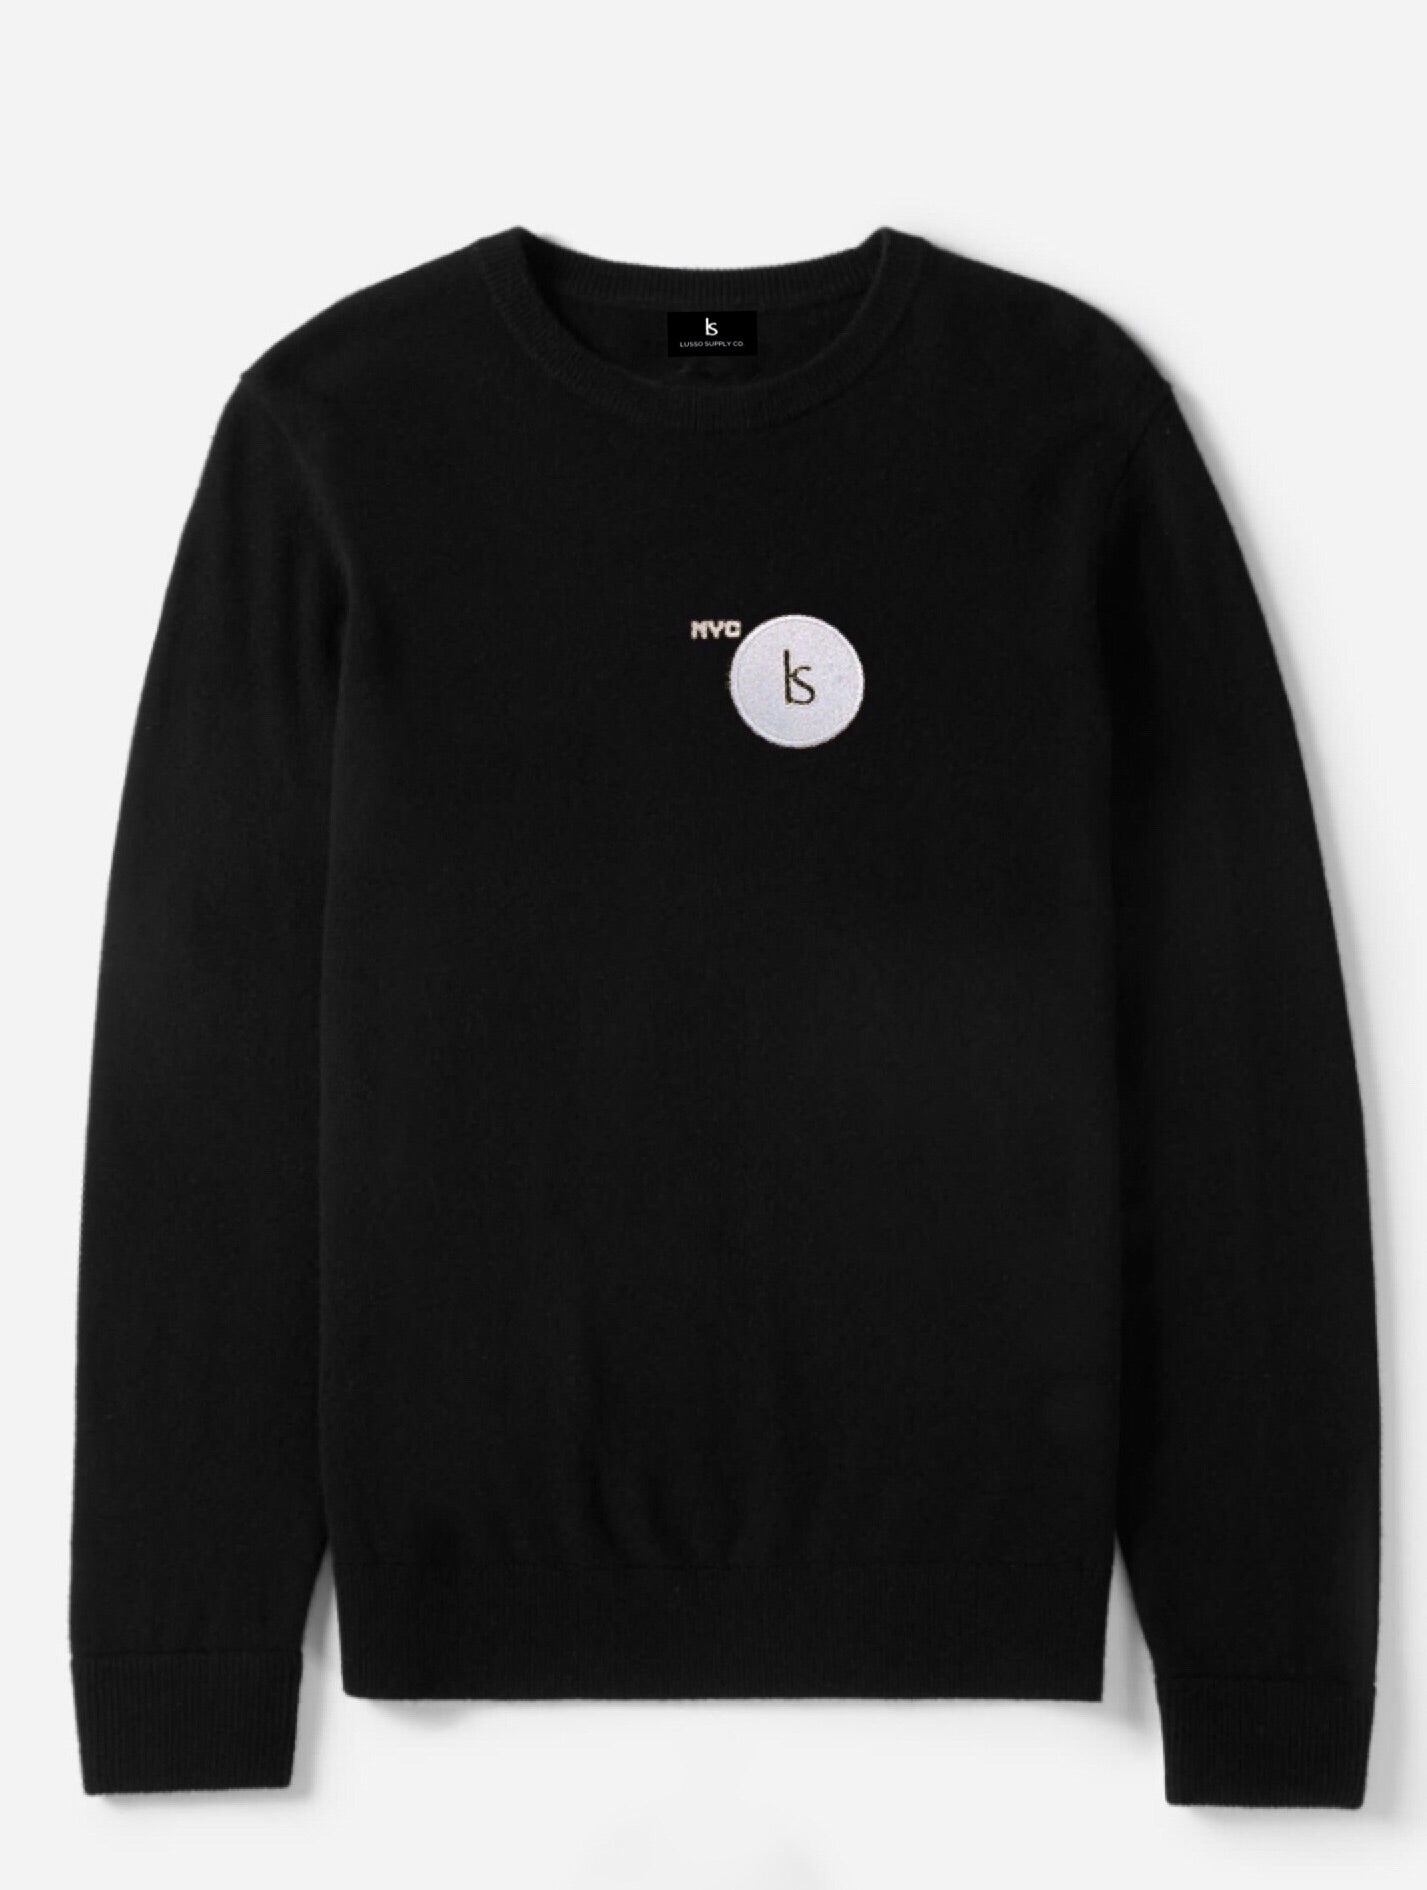 NY6 Byway Crewneck (NYC TAXICAB BLACK EDITION)